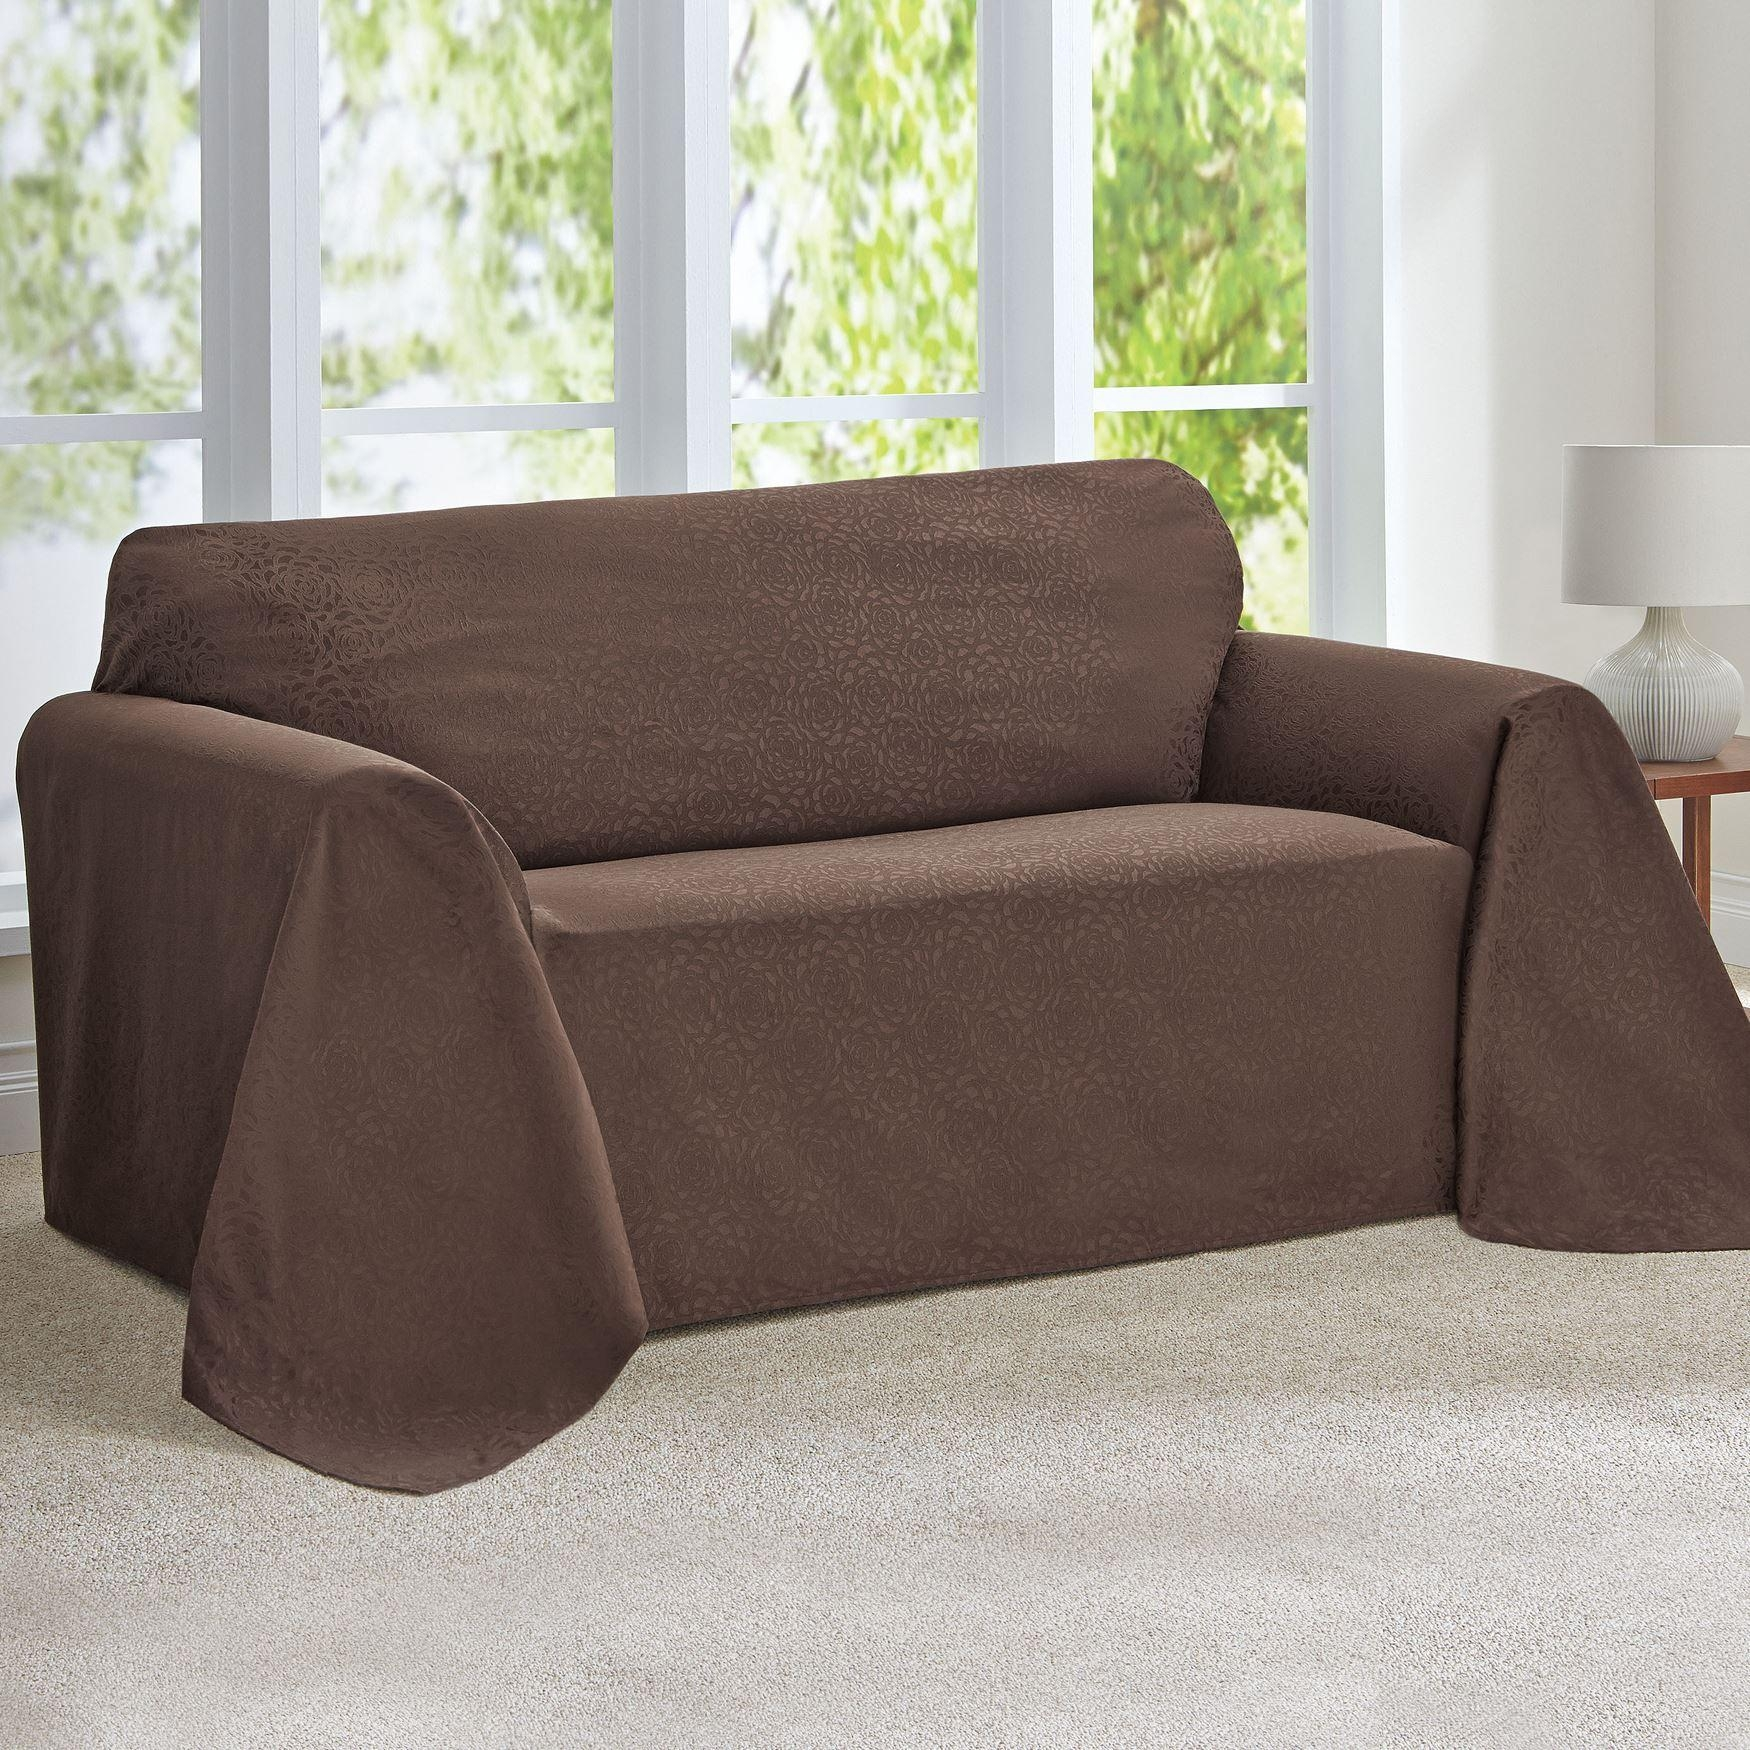 Furniture: Oversized Chair Slipcovers To Keep Your Furniture Clean Pertaining To Sofa And Chair Covers (View 11 of 20)